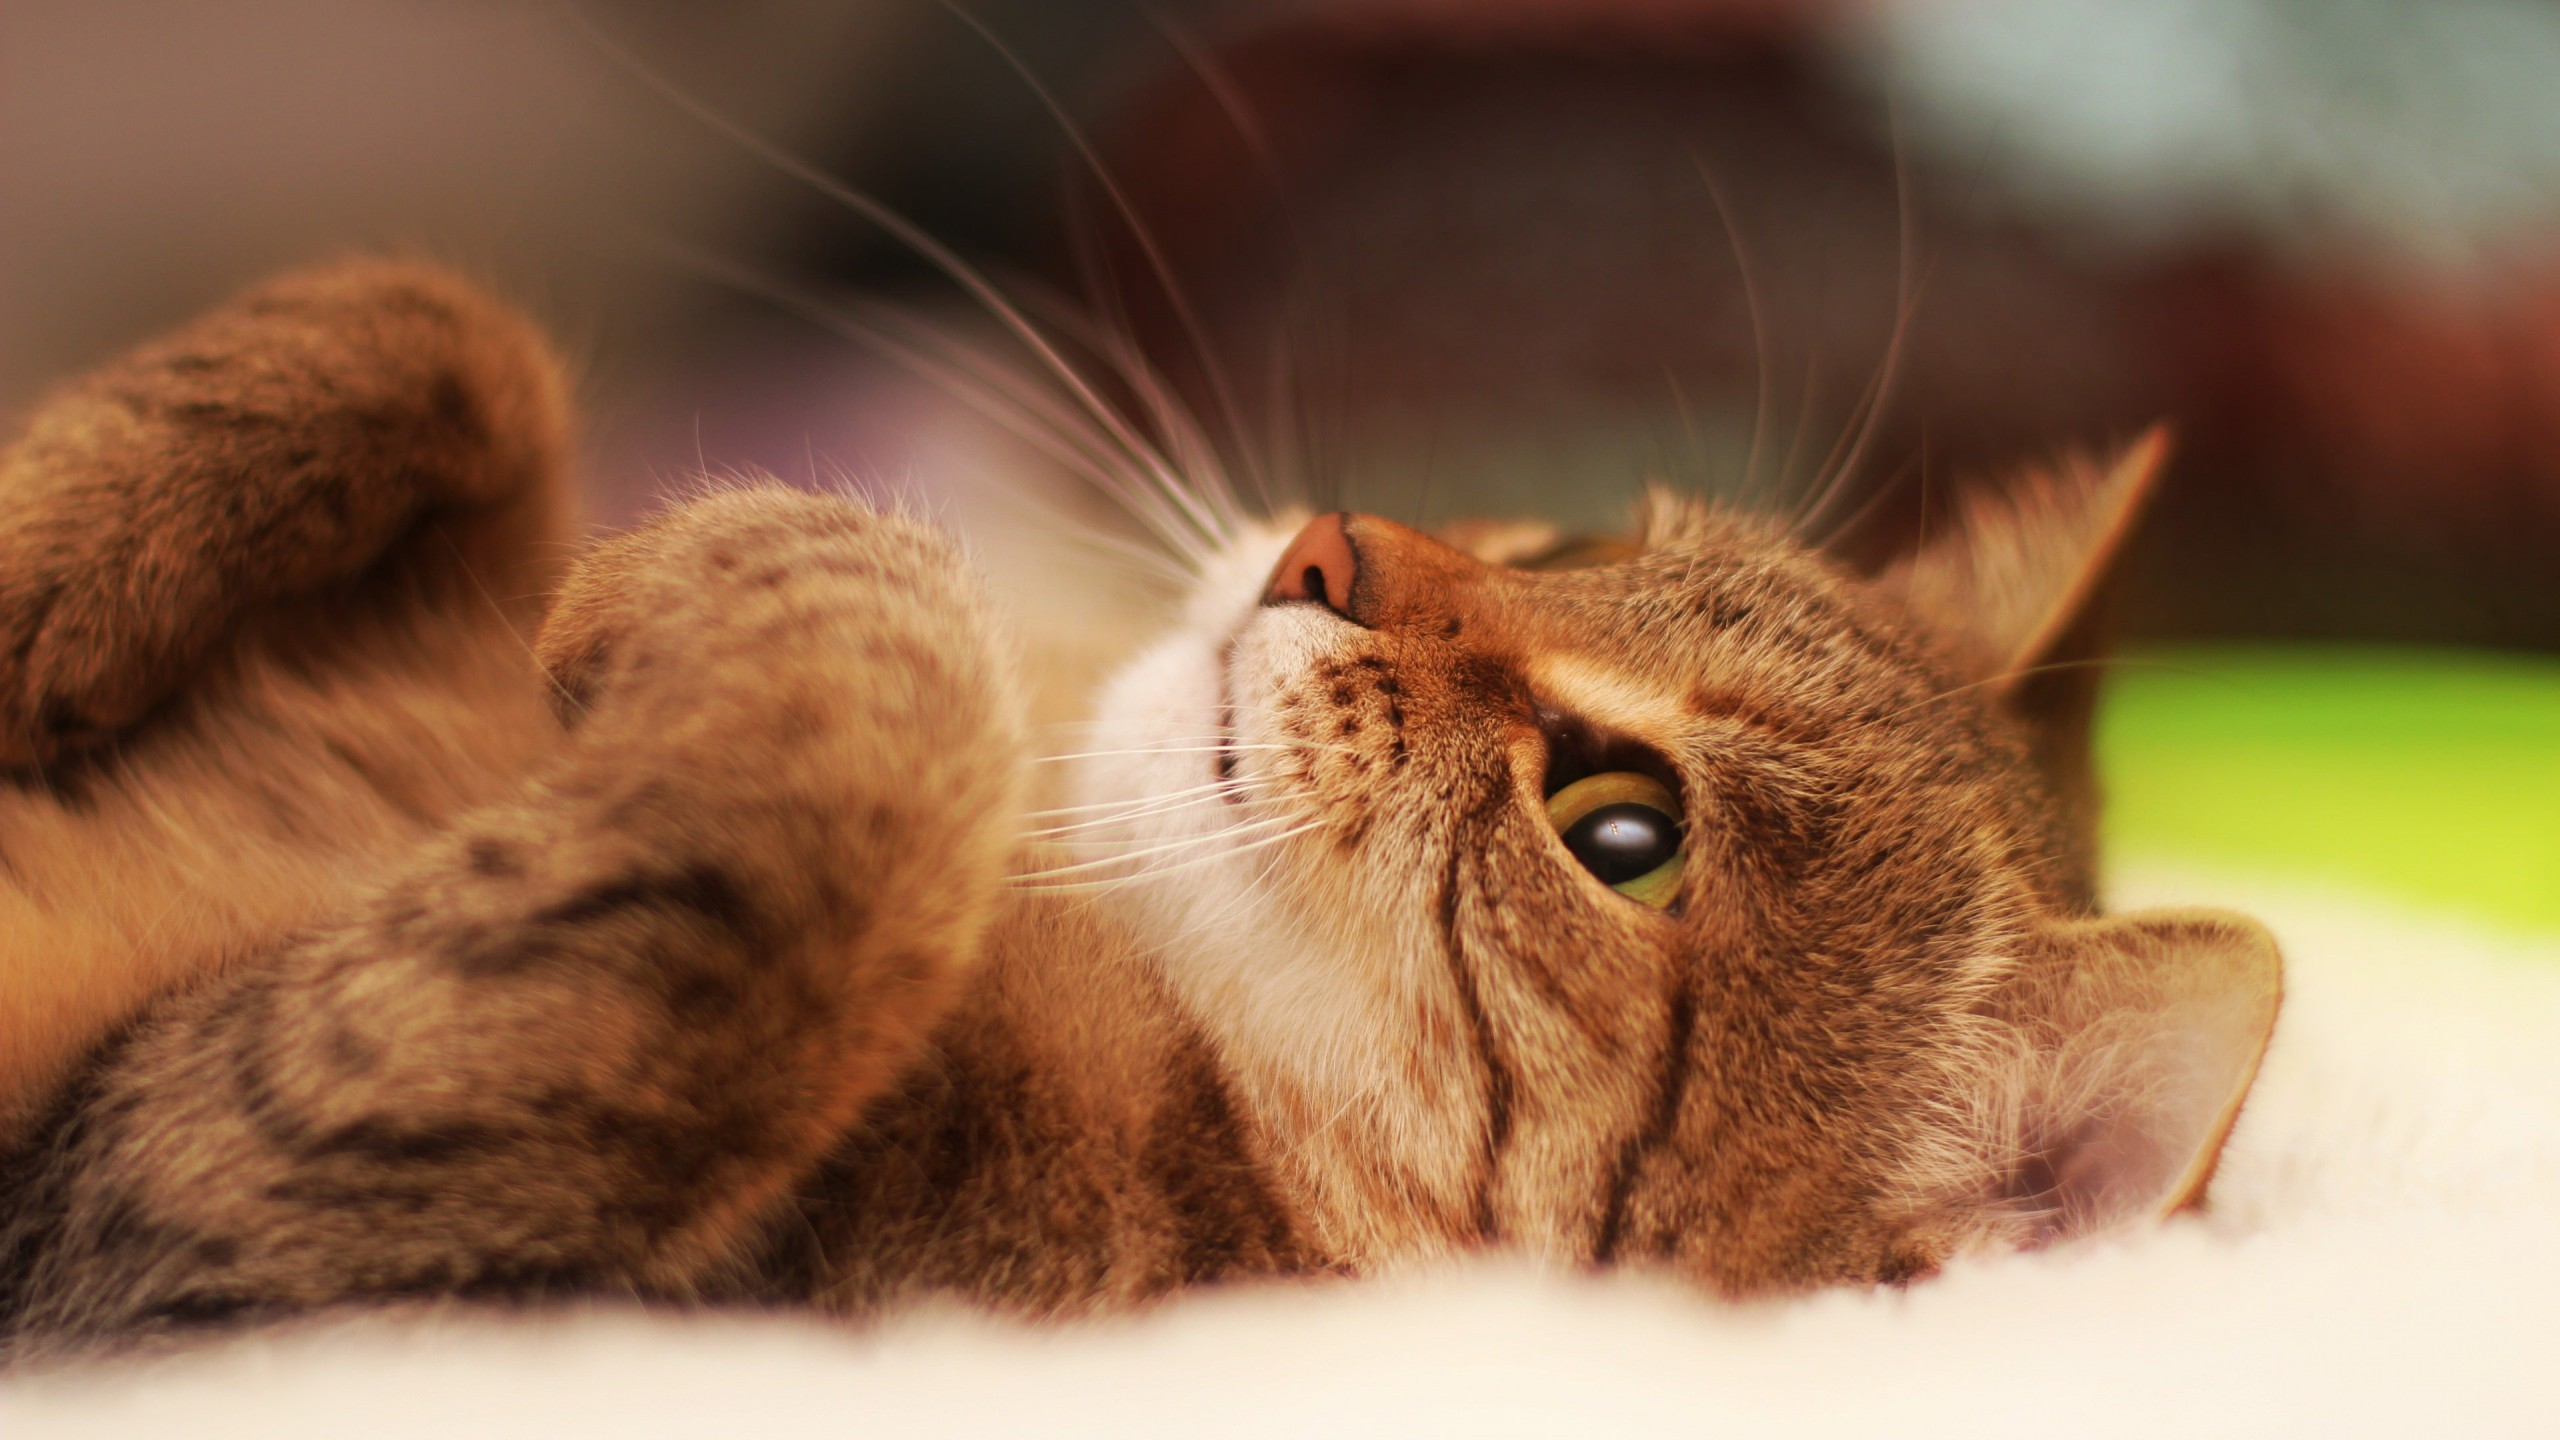 Cat Lying On Back Wallpaper for Desktop 2560x1440